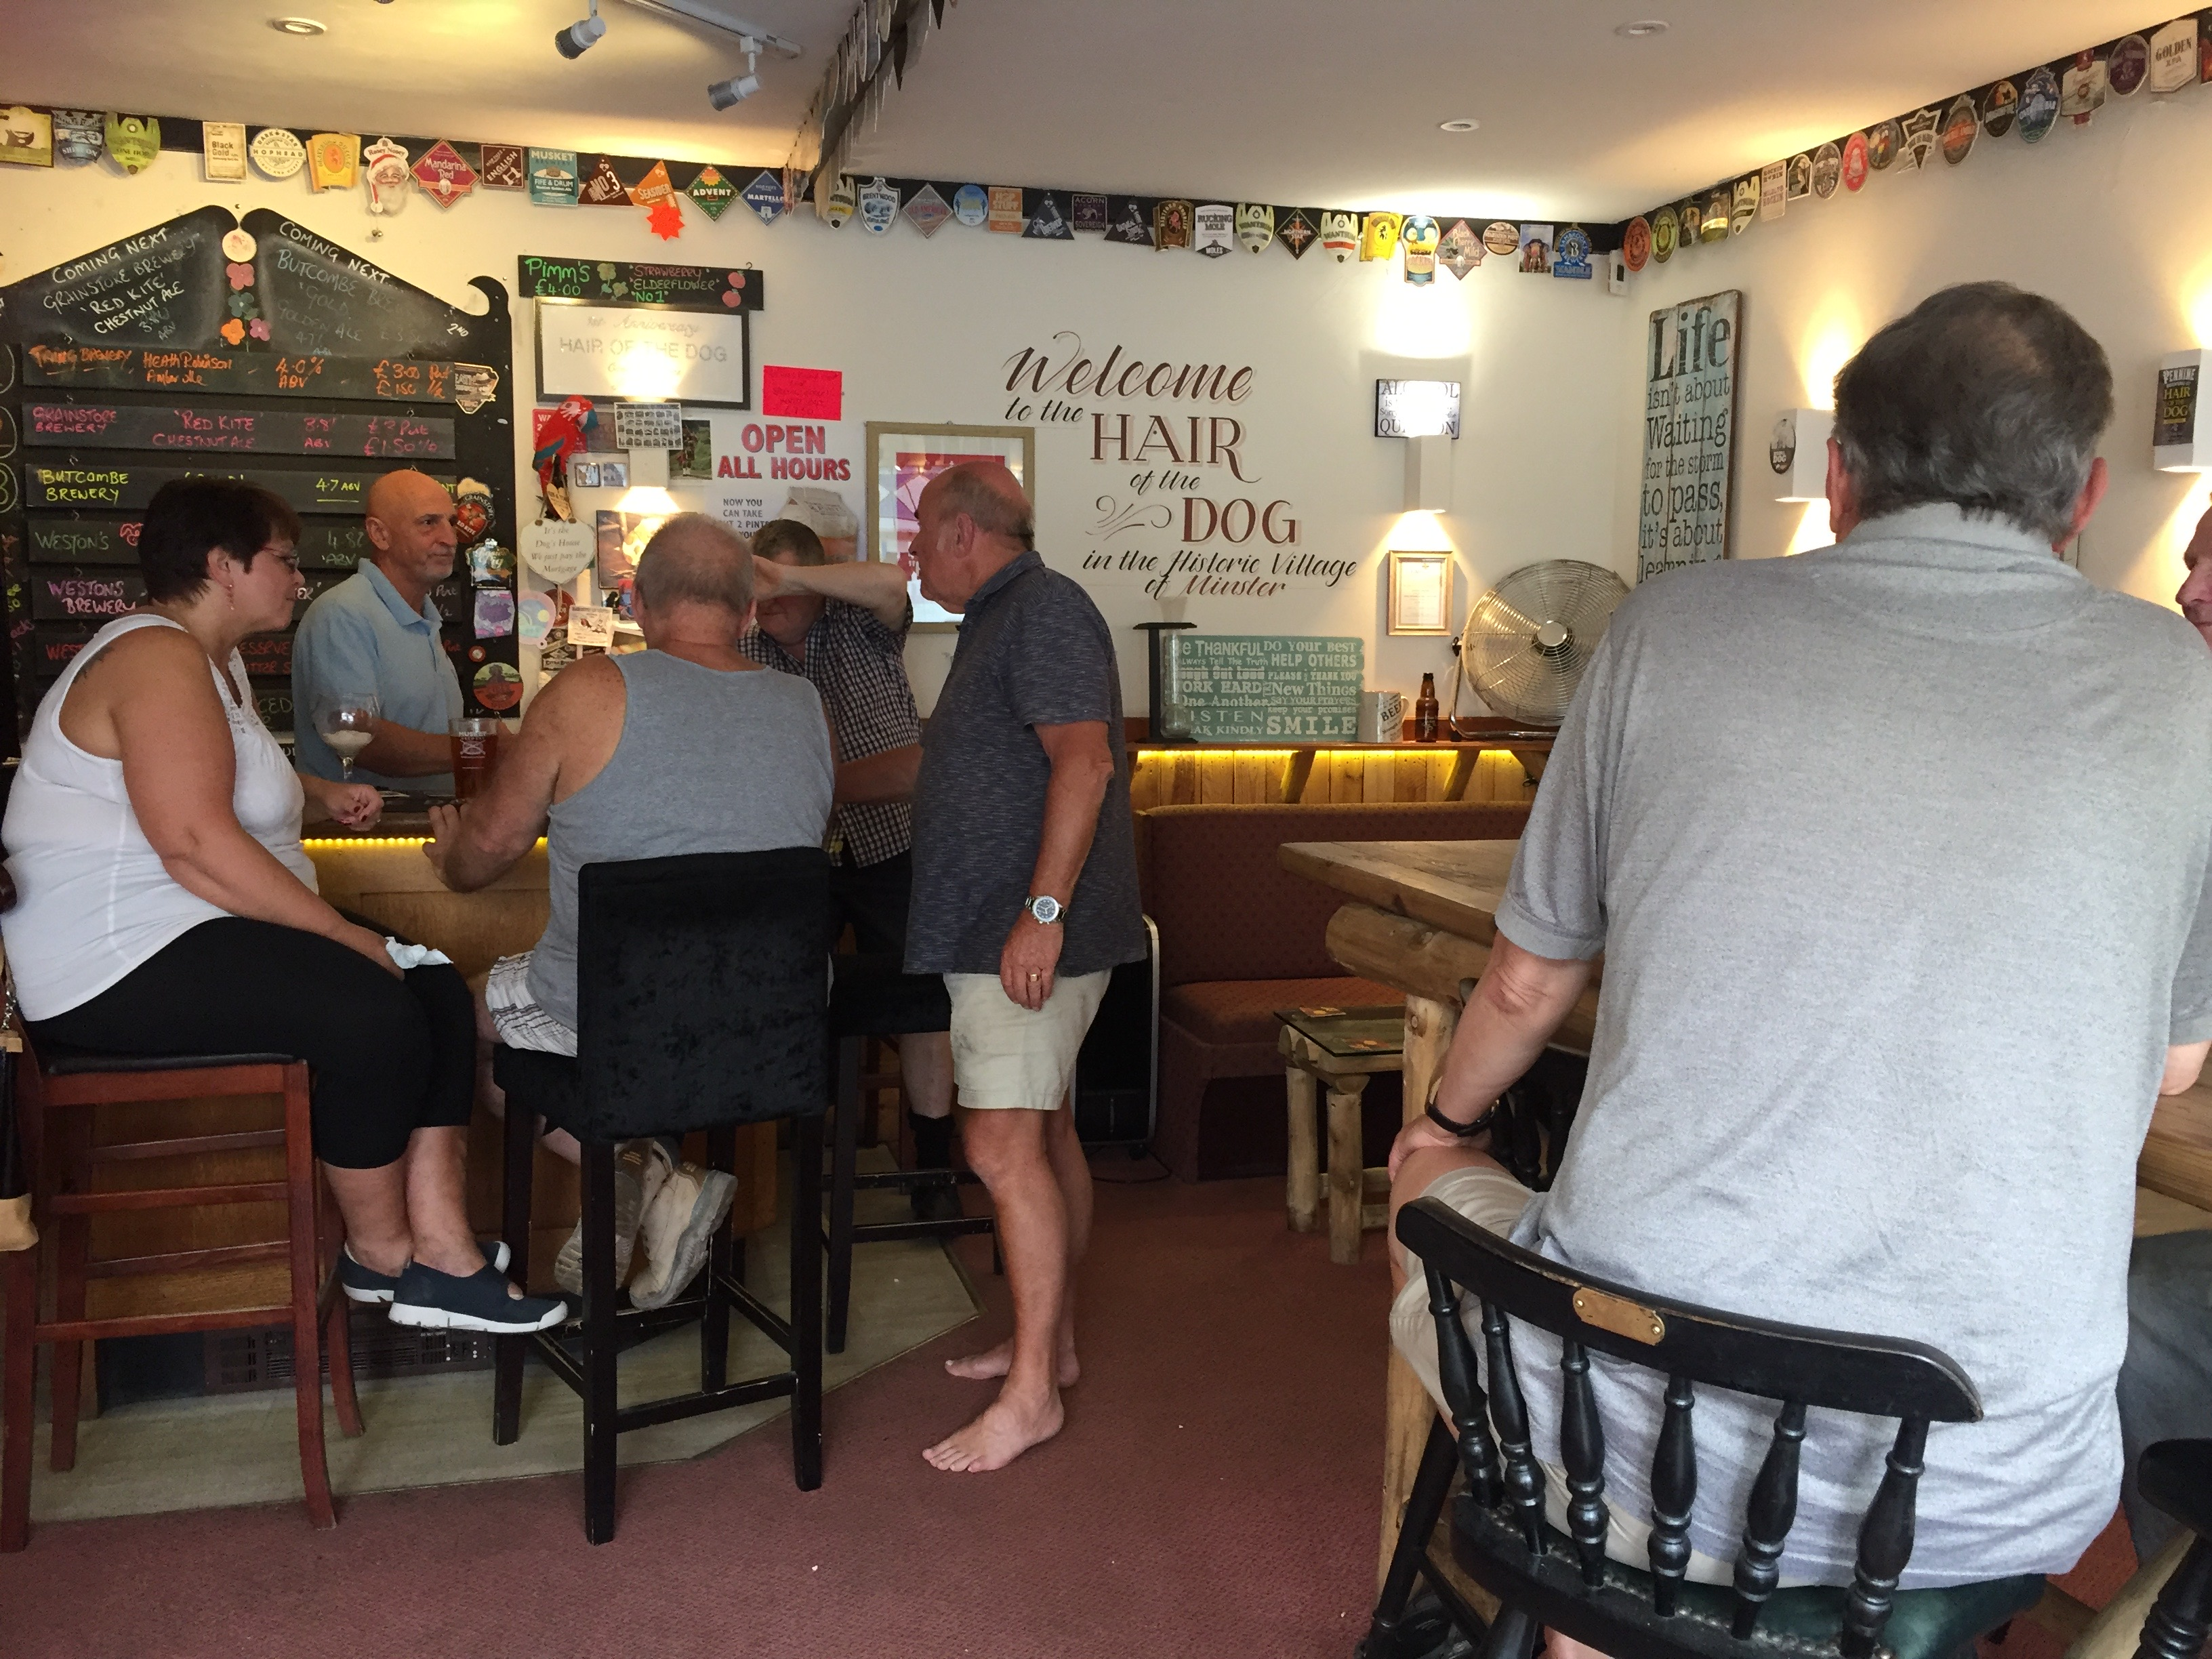 Customers enjoying the pub